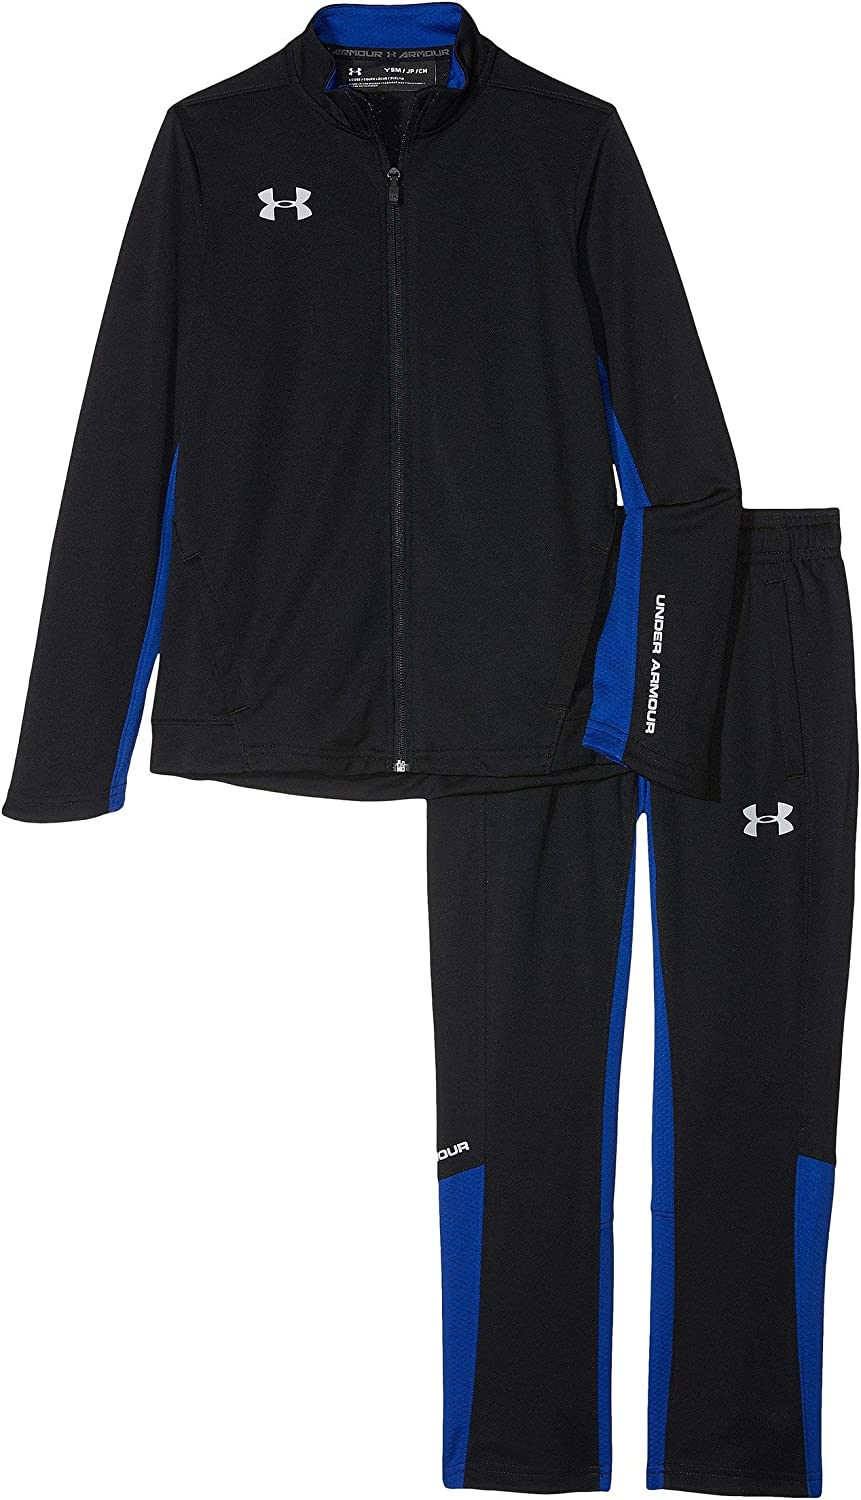 Under Armour y Challenger II Knit Warm-Up Chándal, Niños, Negro ...